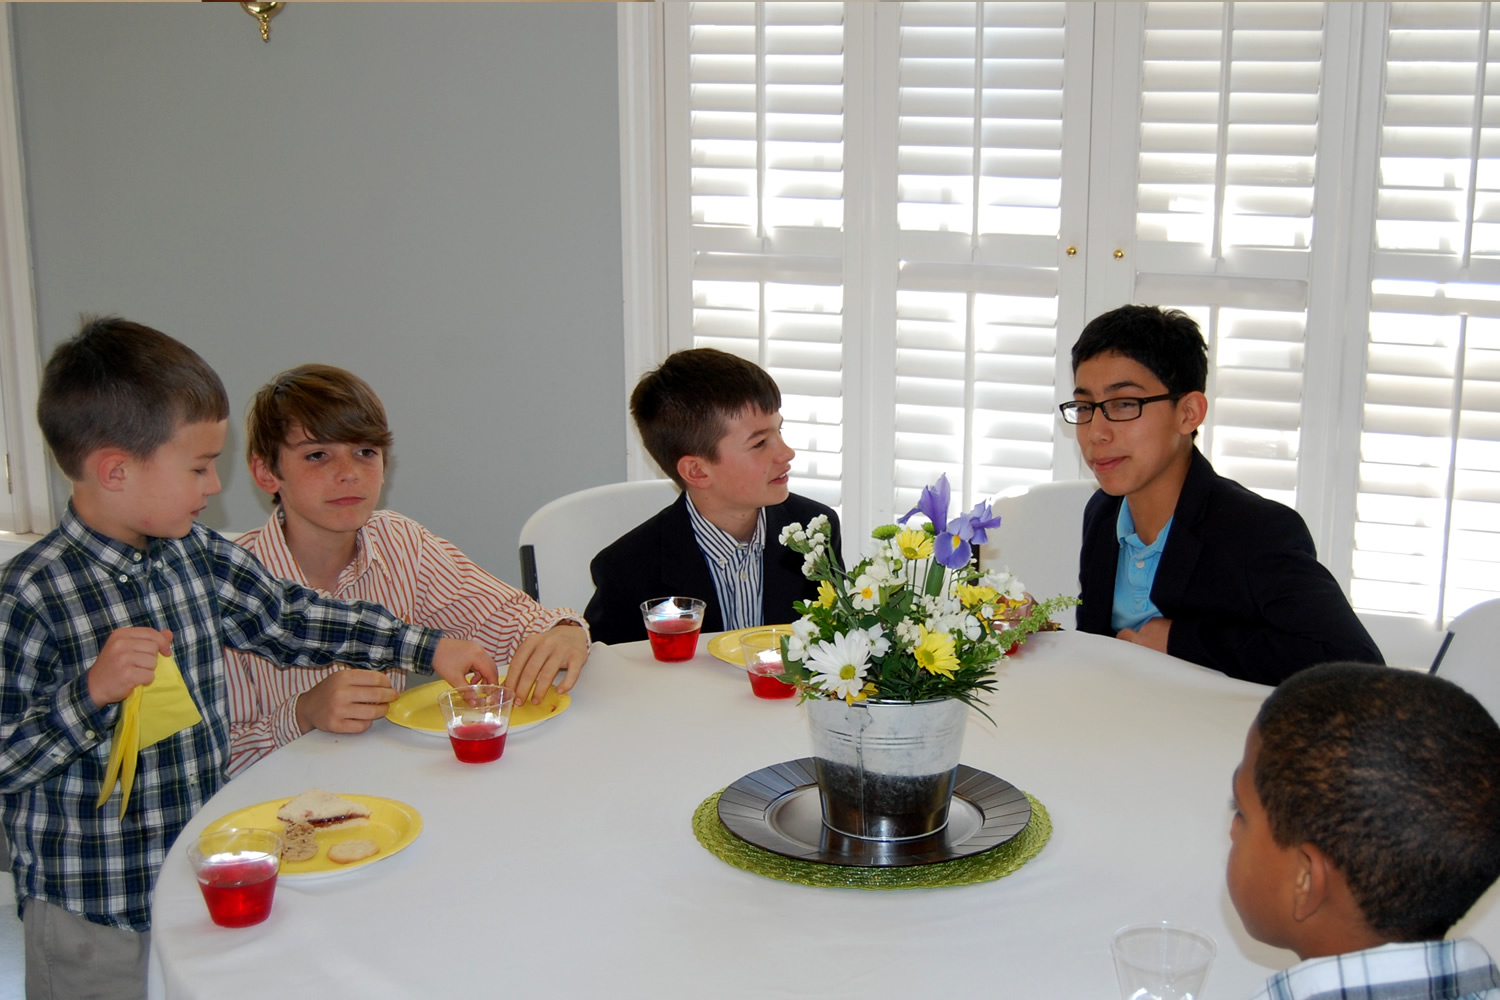 Everyone wants to sit at the kid's table